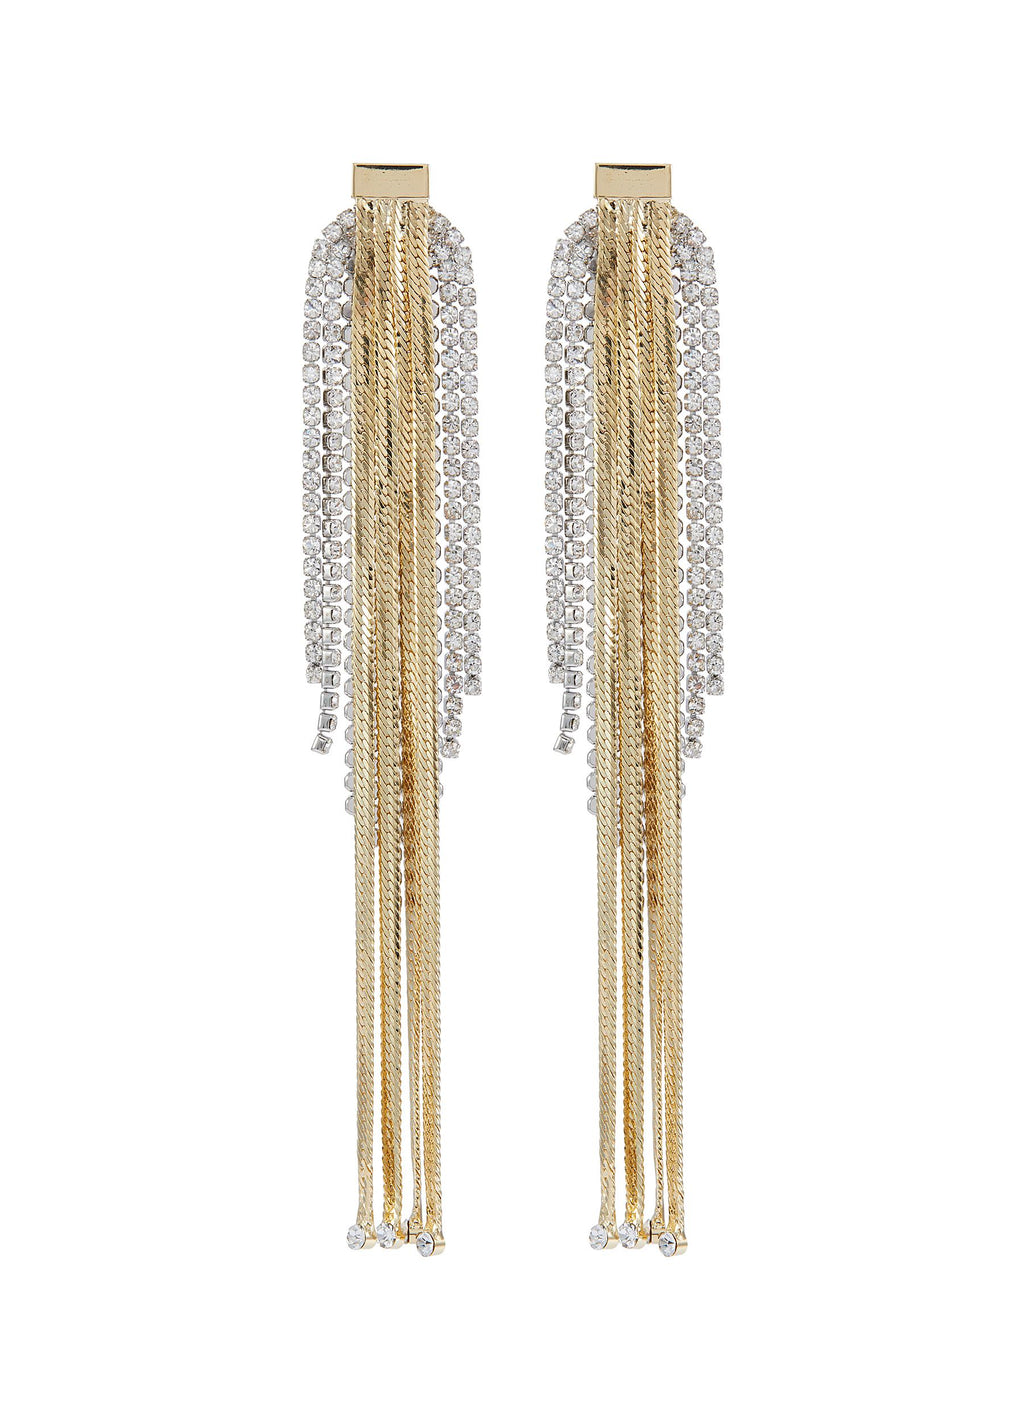 GLASS CRYSTAL CHAIN FRINGE DROP EARRINGS